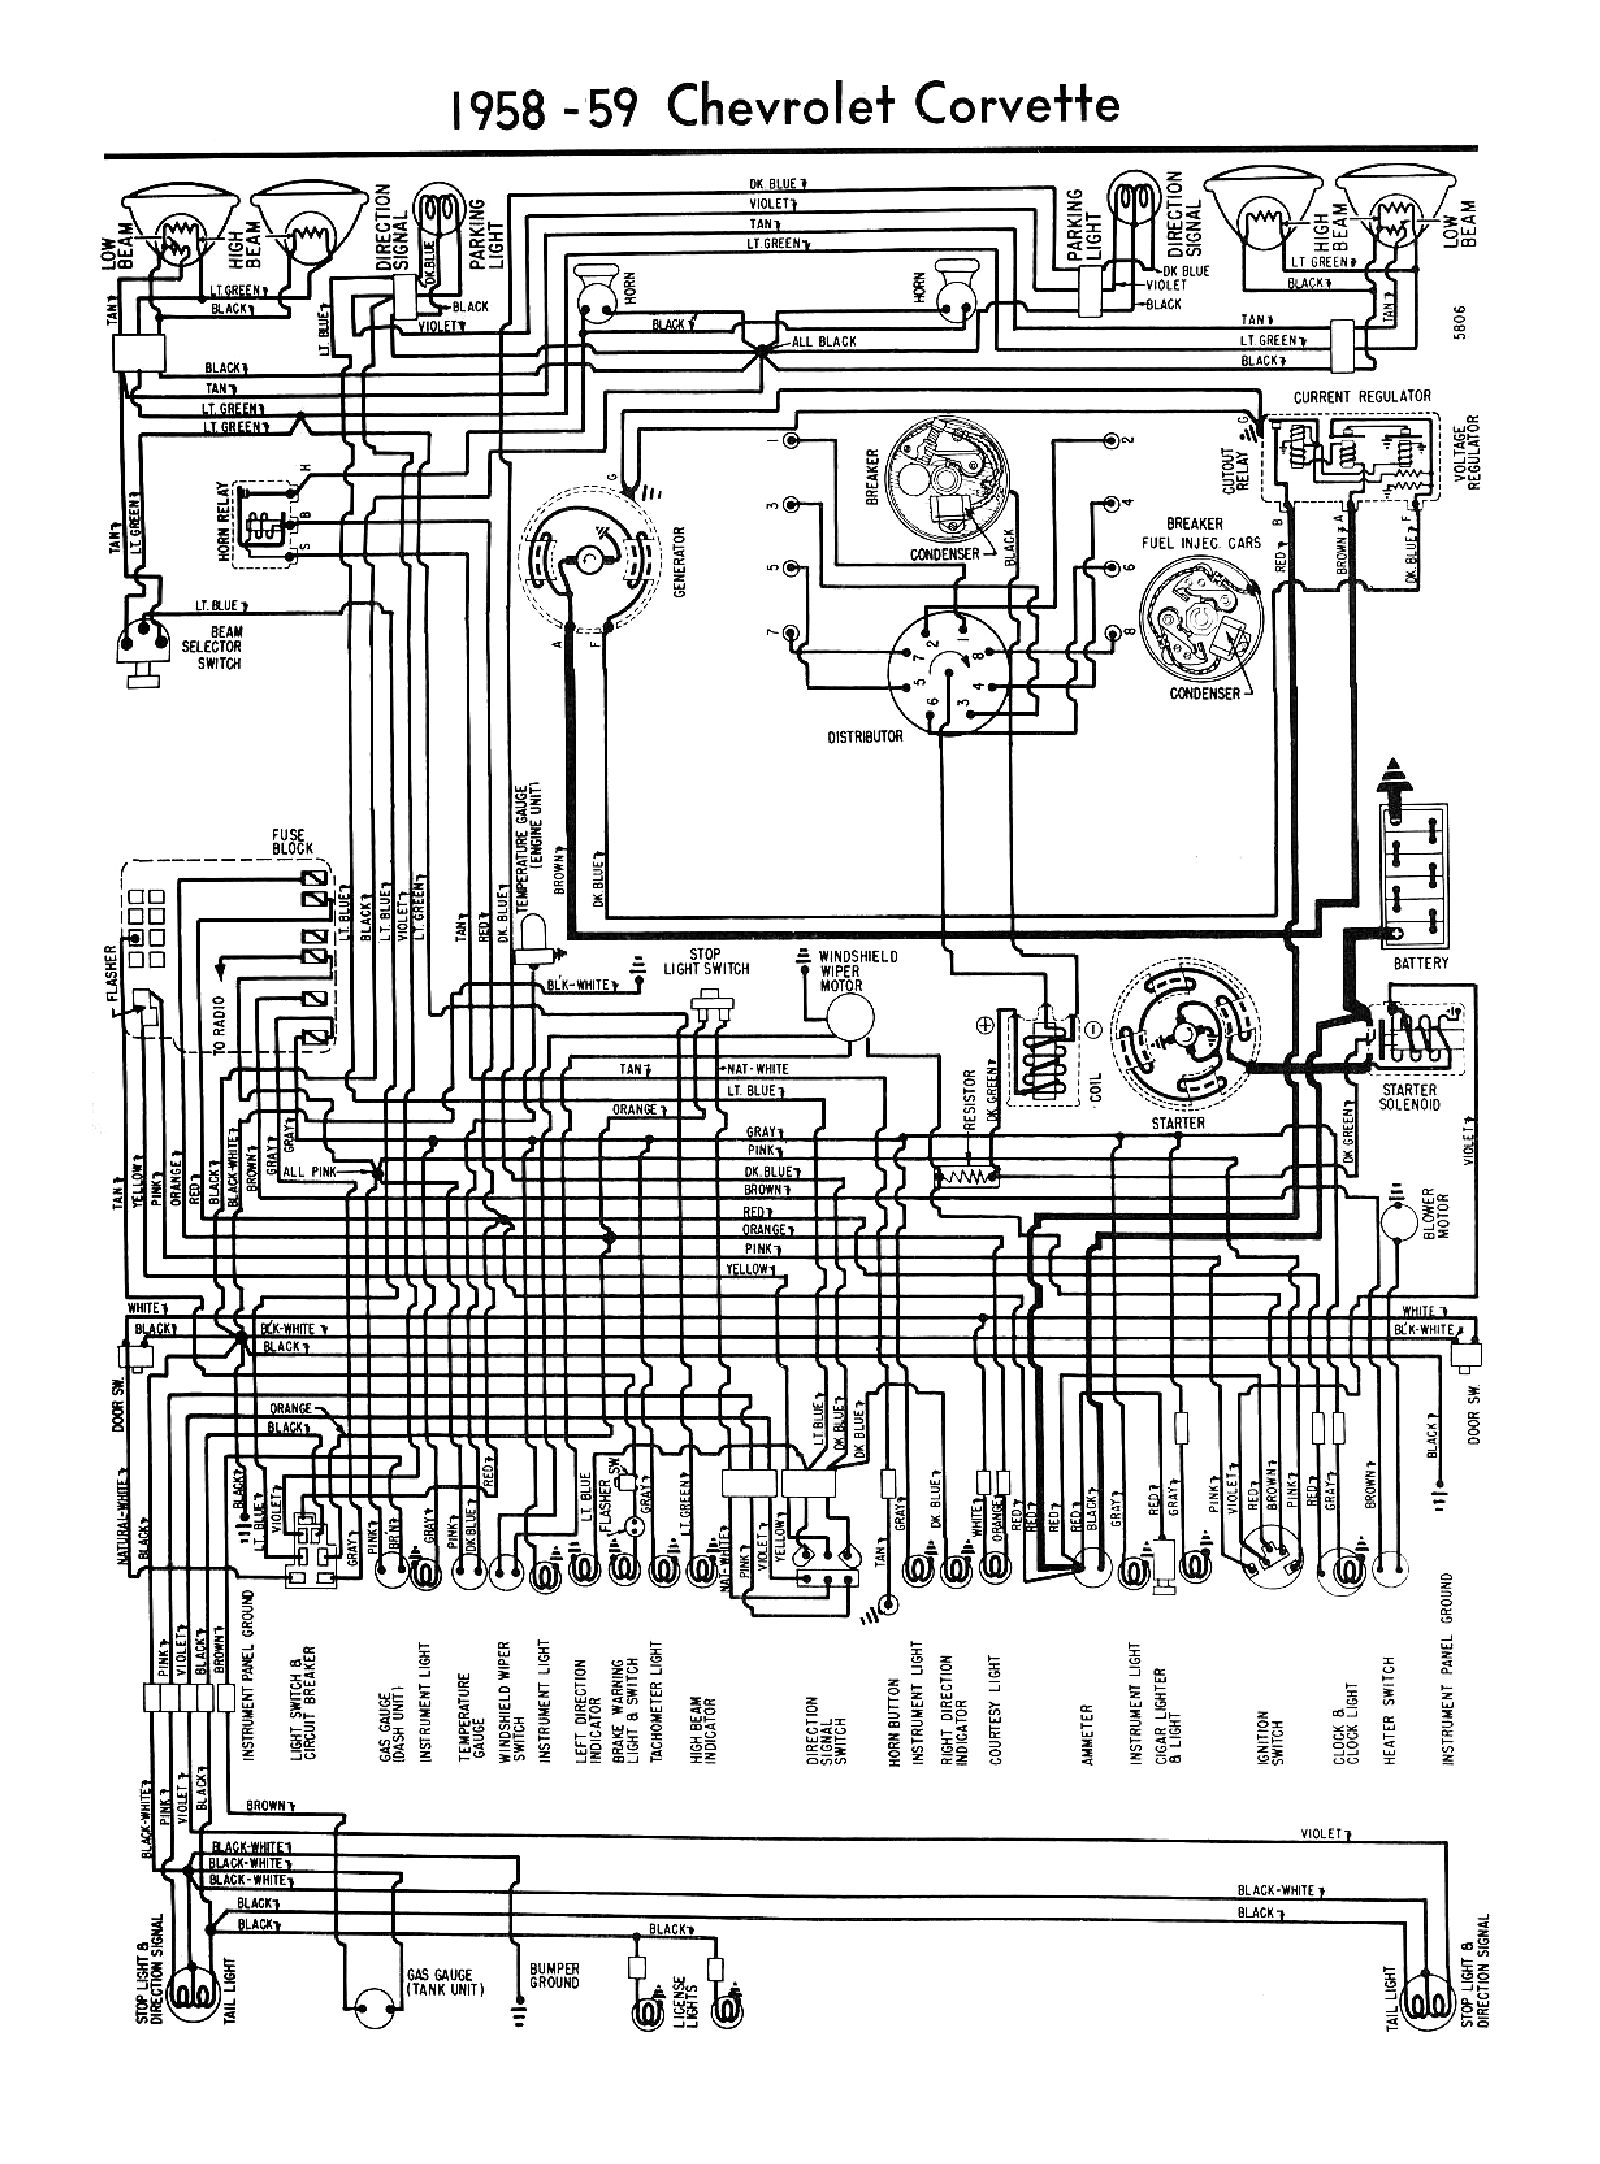 Excellent 1980 Diagram Electrical Wiring Davies Corvette Parts Accessories Wiring Cloud Intelaidewilluminateatxorg